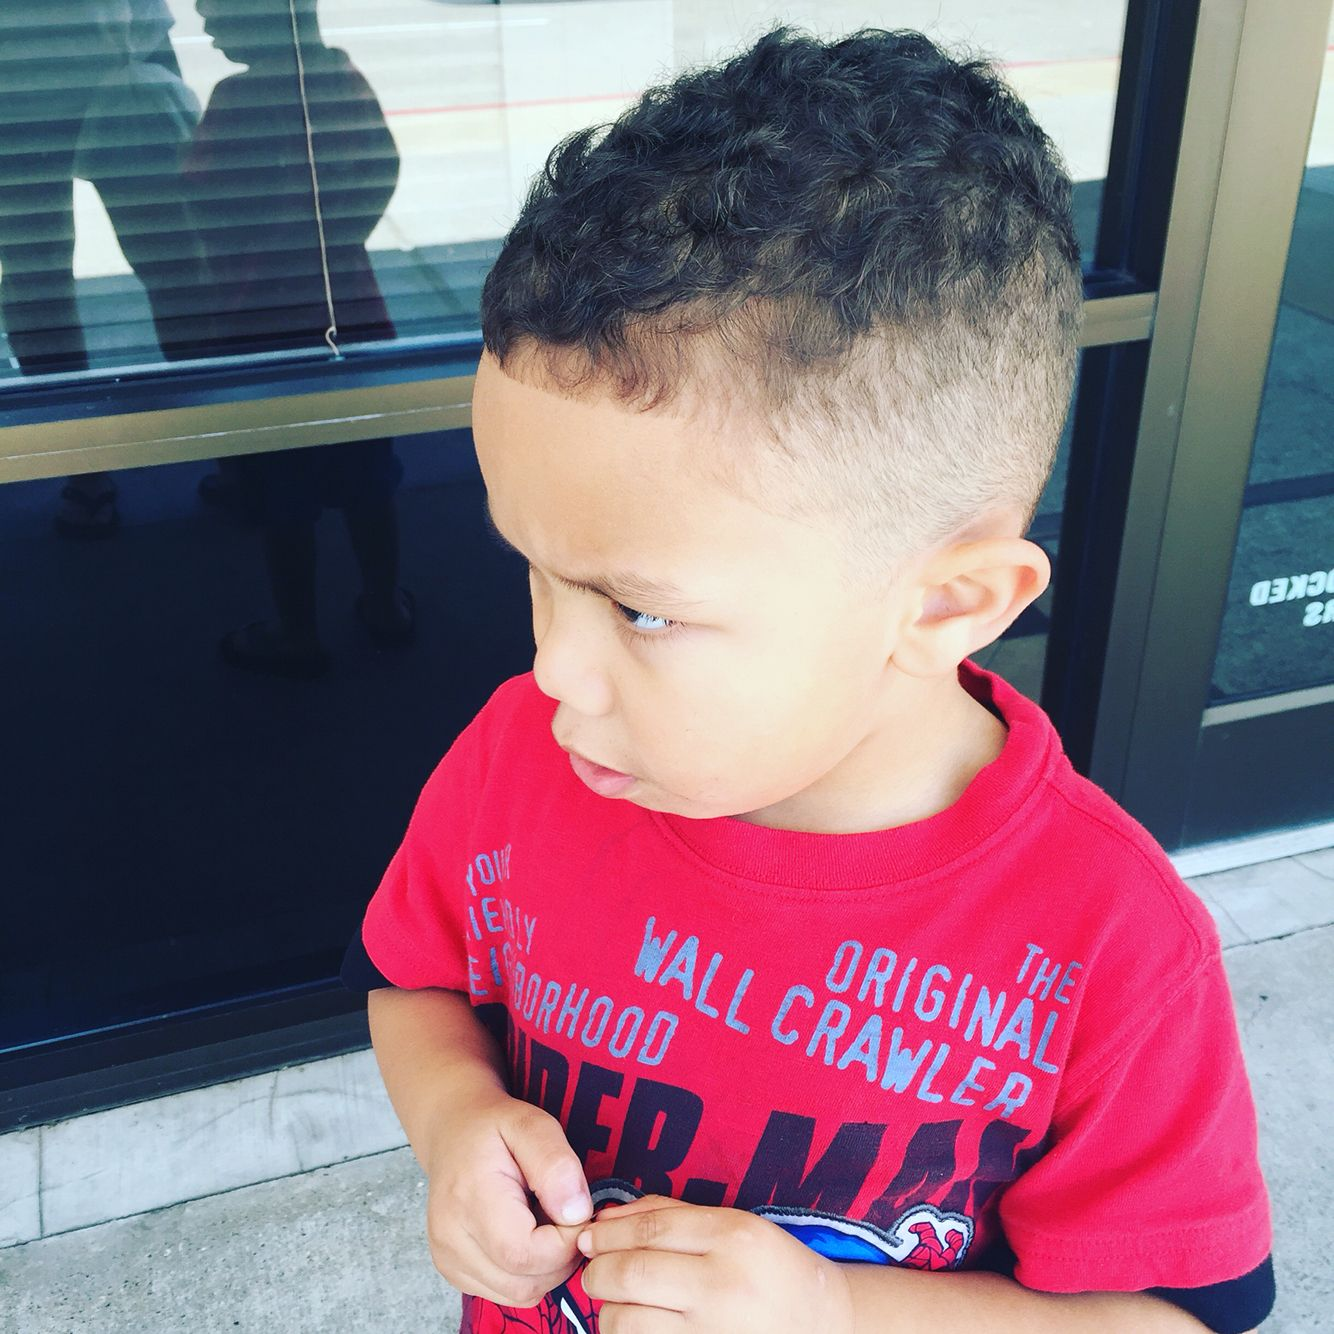 My 4 Year Old Boys New Hair Cute Fade And Edge Mixed Boy Old Hairstyles Kids Hairstyles Boys Long Hairstyles